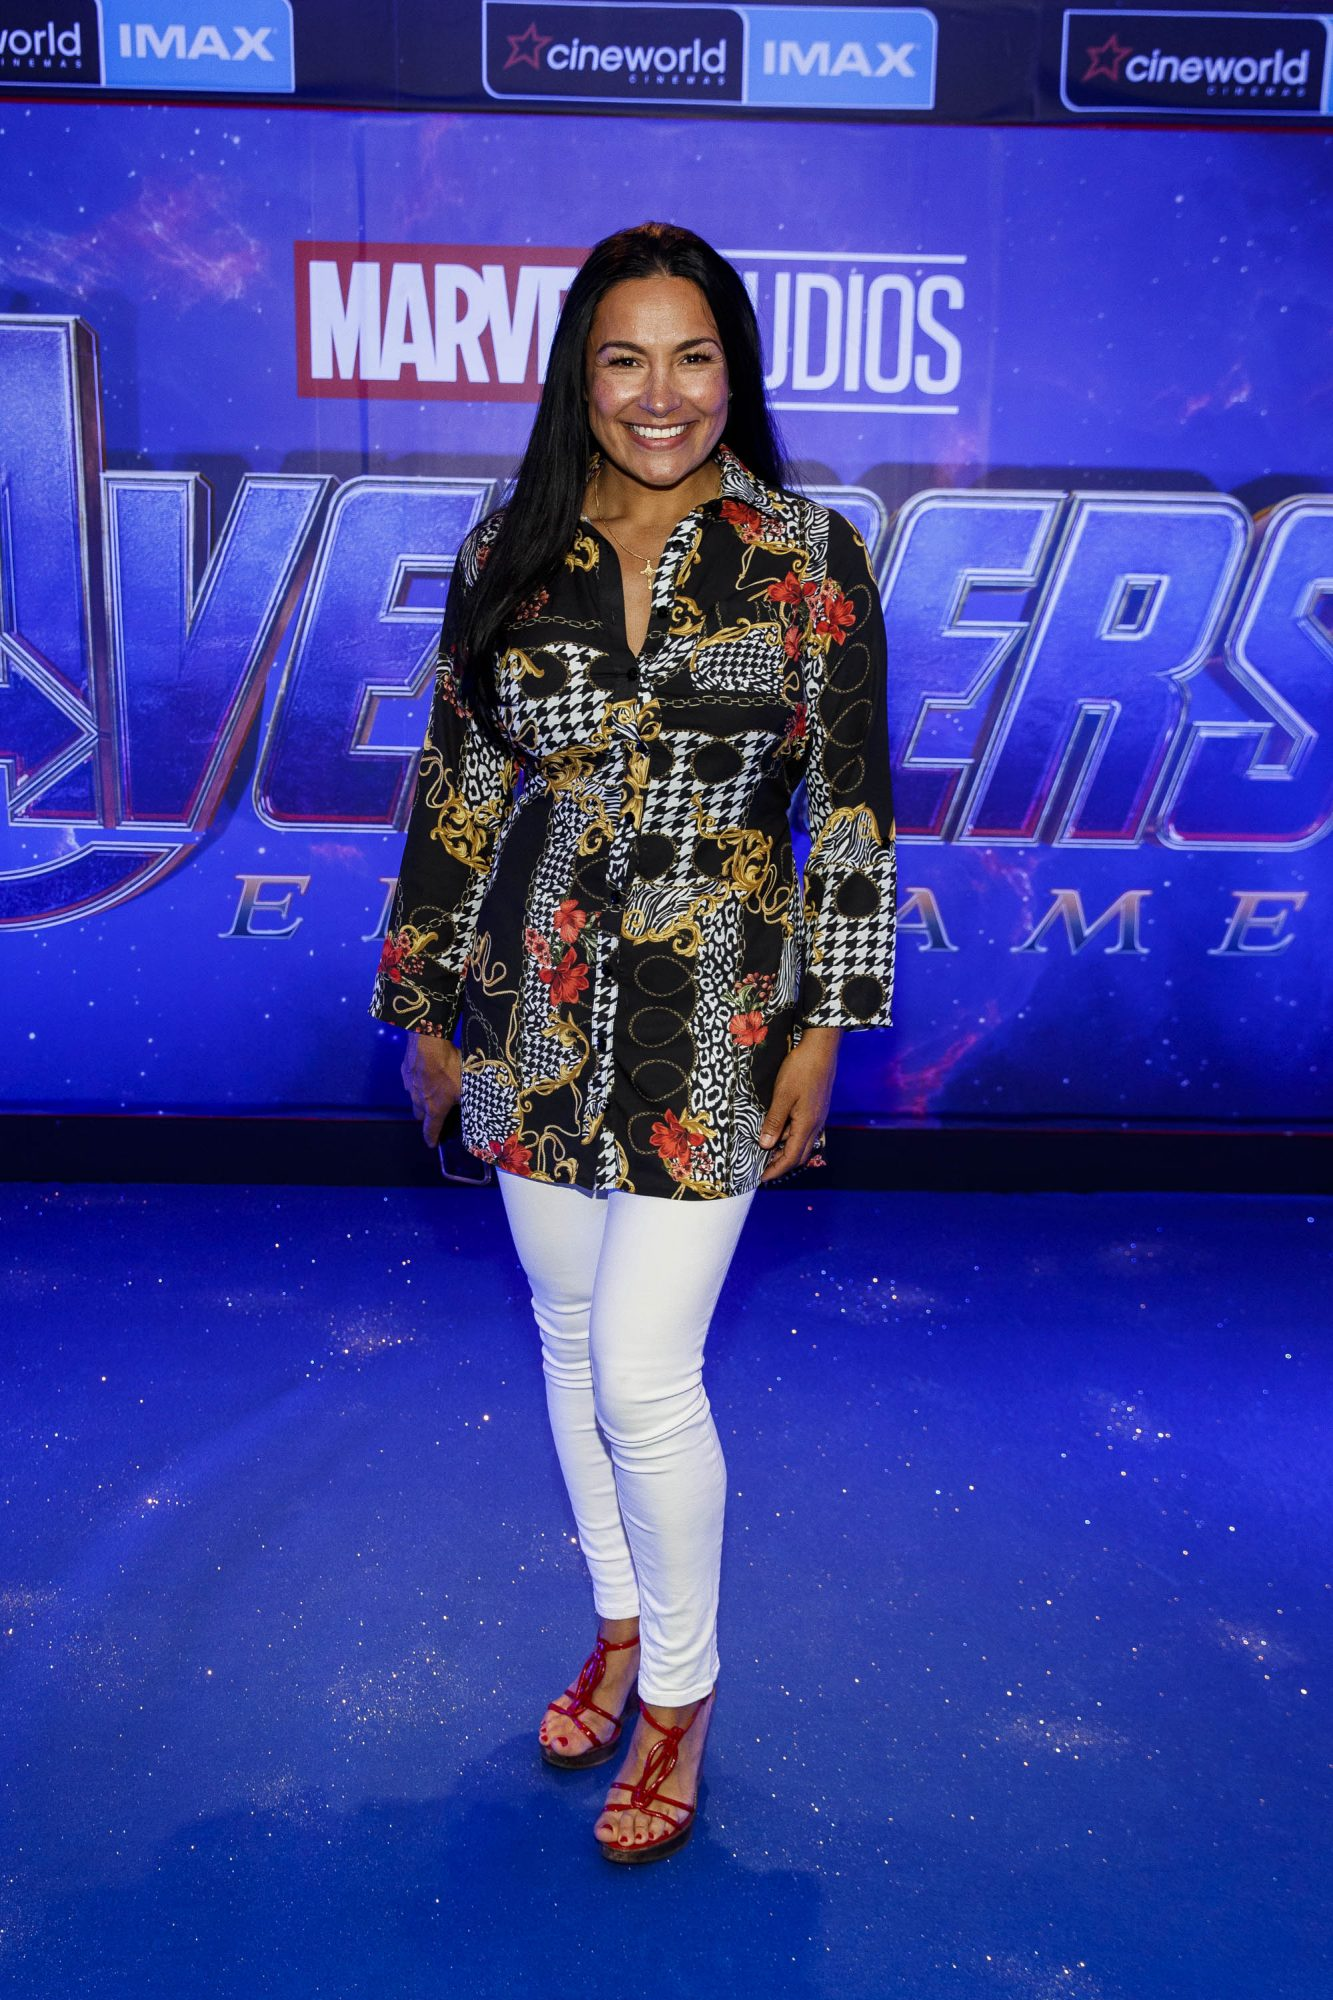 Hazel Kaneswaran pictured at the special preview screening of Marvel Studios' Avengers: Endgame at Cineworld Dublin. Picture by: Andres Poveda